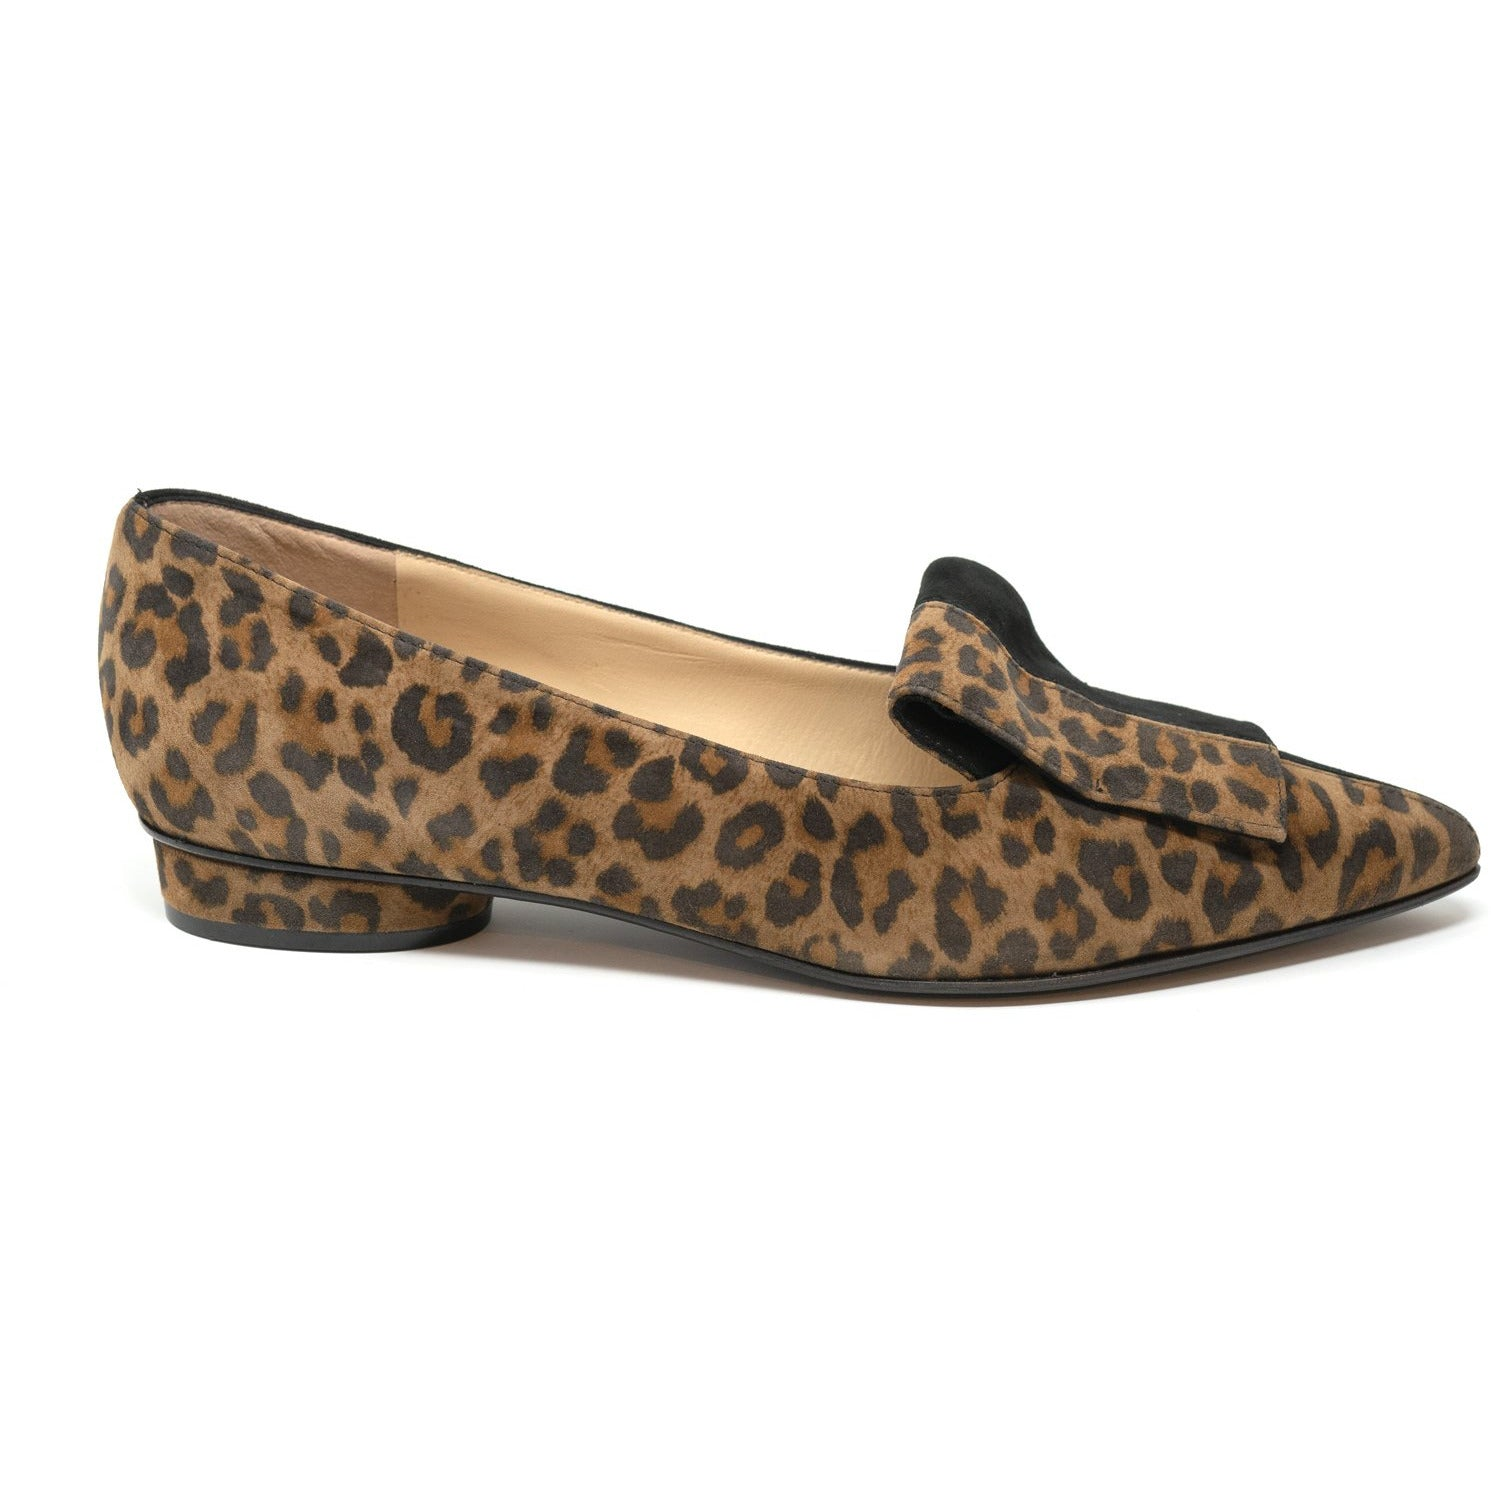 MIL8201 T10 Leopard Lamb Hair and Suede Women Flats - Jennifer Tattanelli